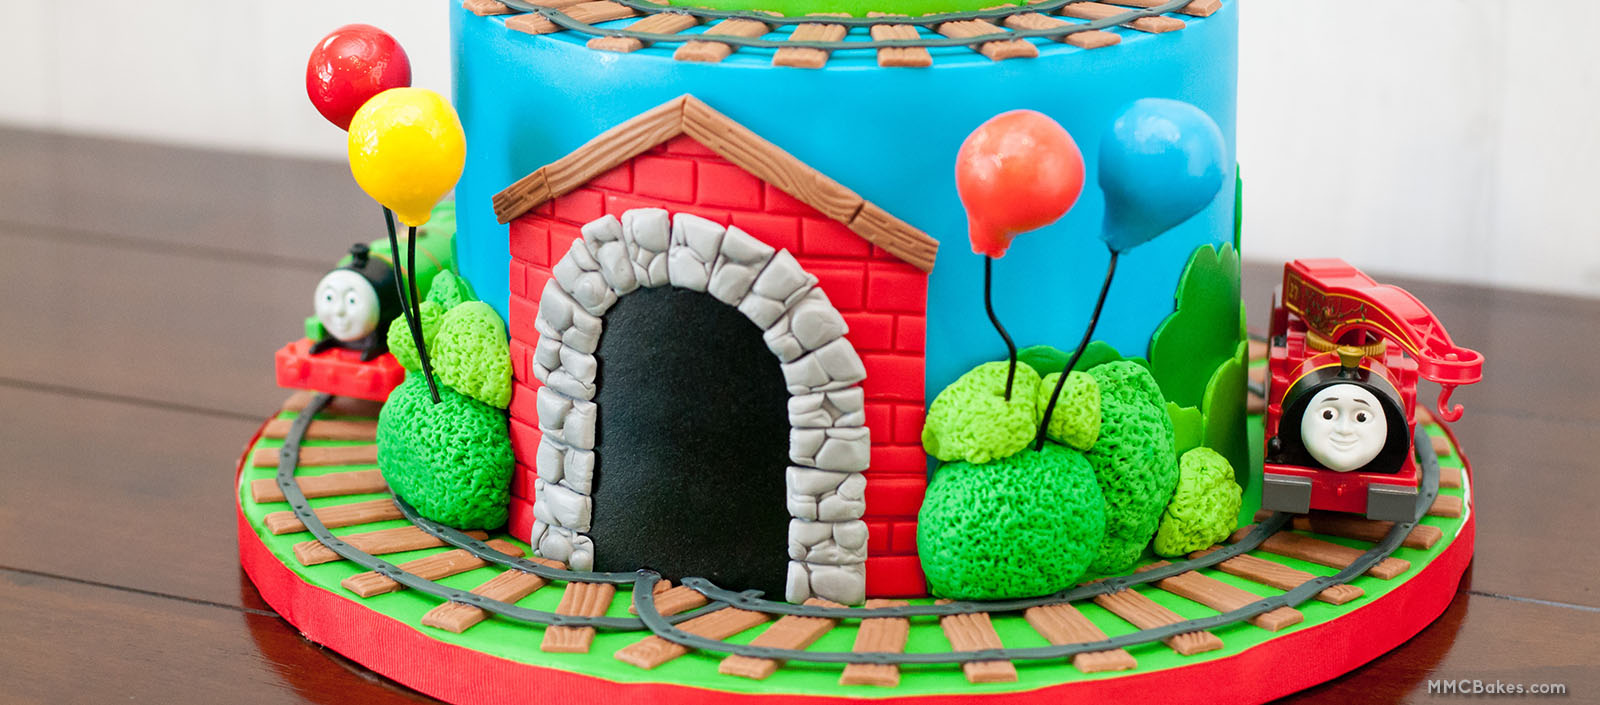 Mmc Bakes Custom Cakes Thomas The Train Thomas And Friends Cake San